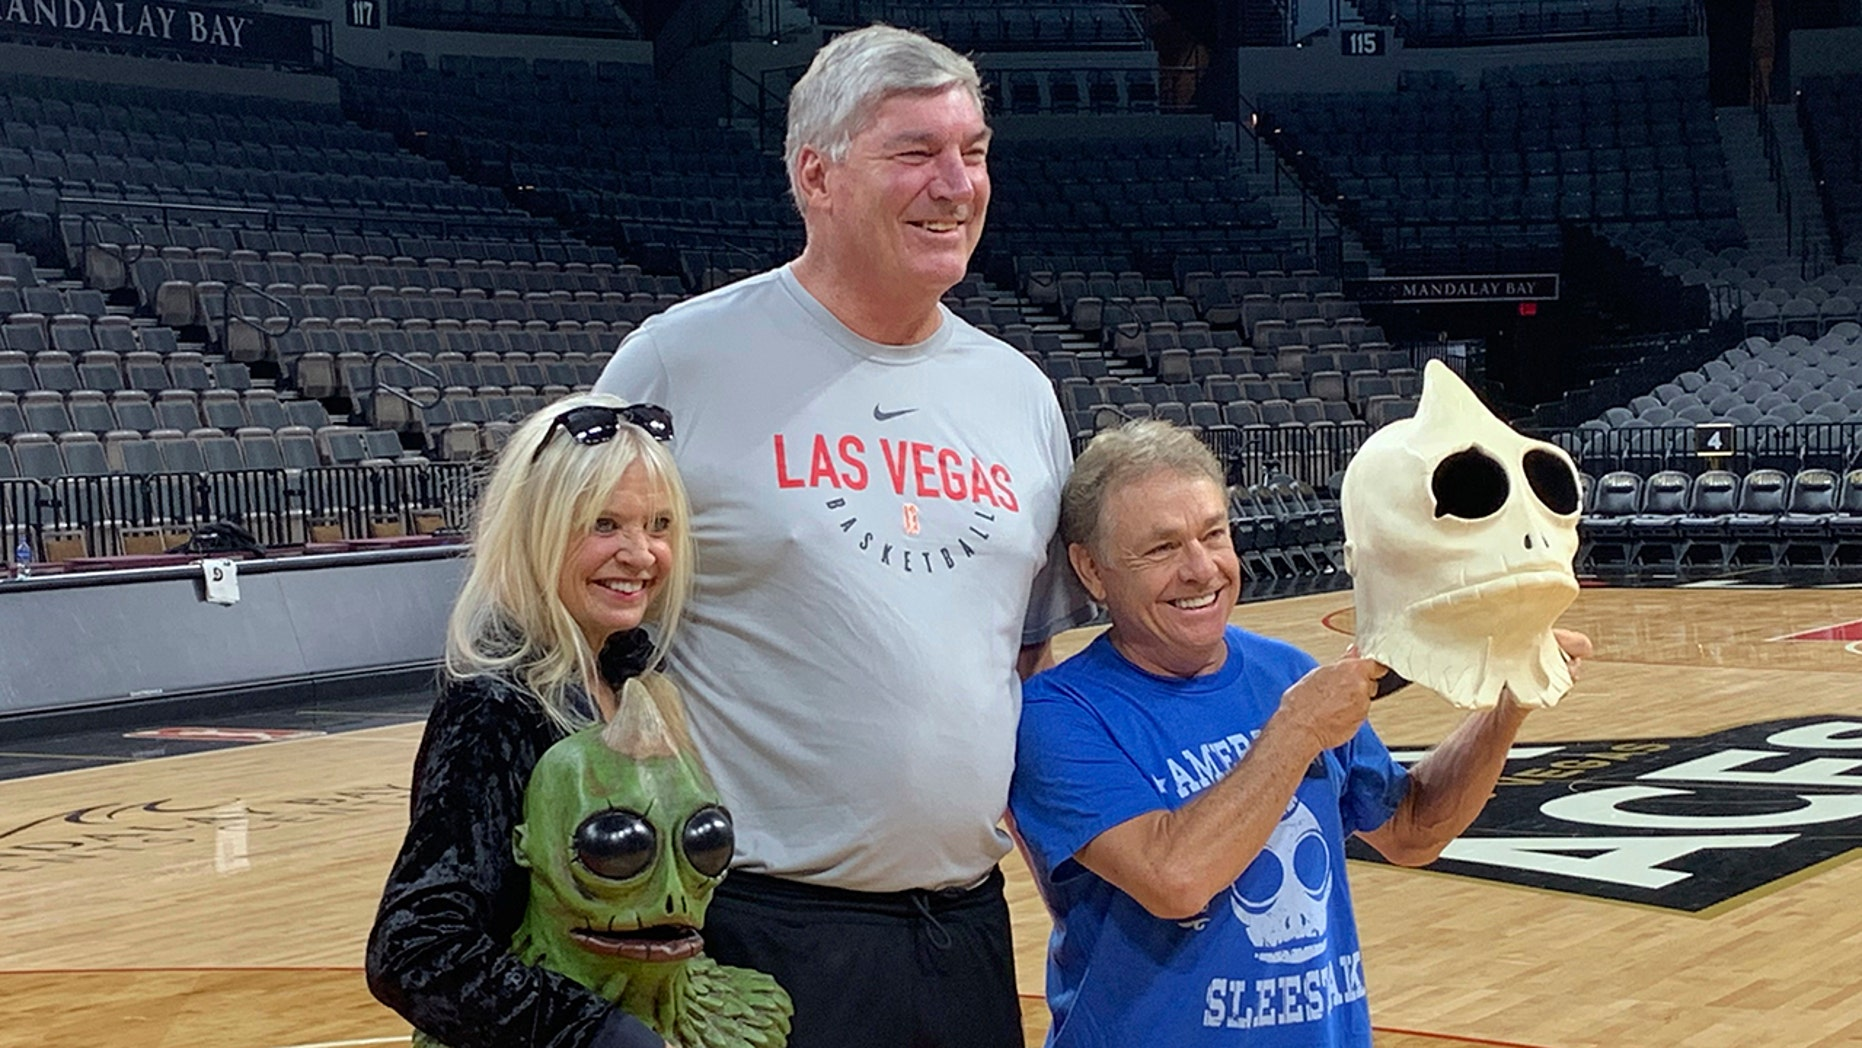 WNBA basketball coach Las Vegas Aces coach Bill Laimbeer poses in Las Vegas on Tuesday, July 30, 2019 for photos with Kathy Coleman (left) and Wesley Eure. (AP Photo / Doug Feinberg)